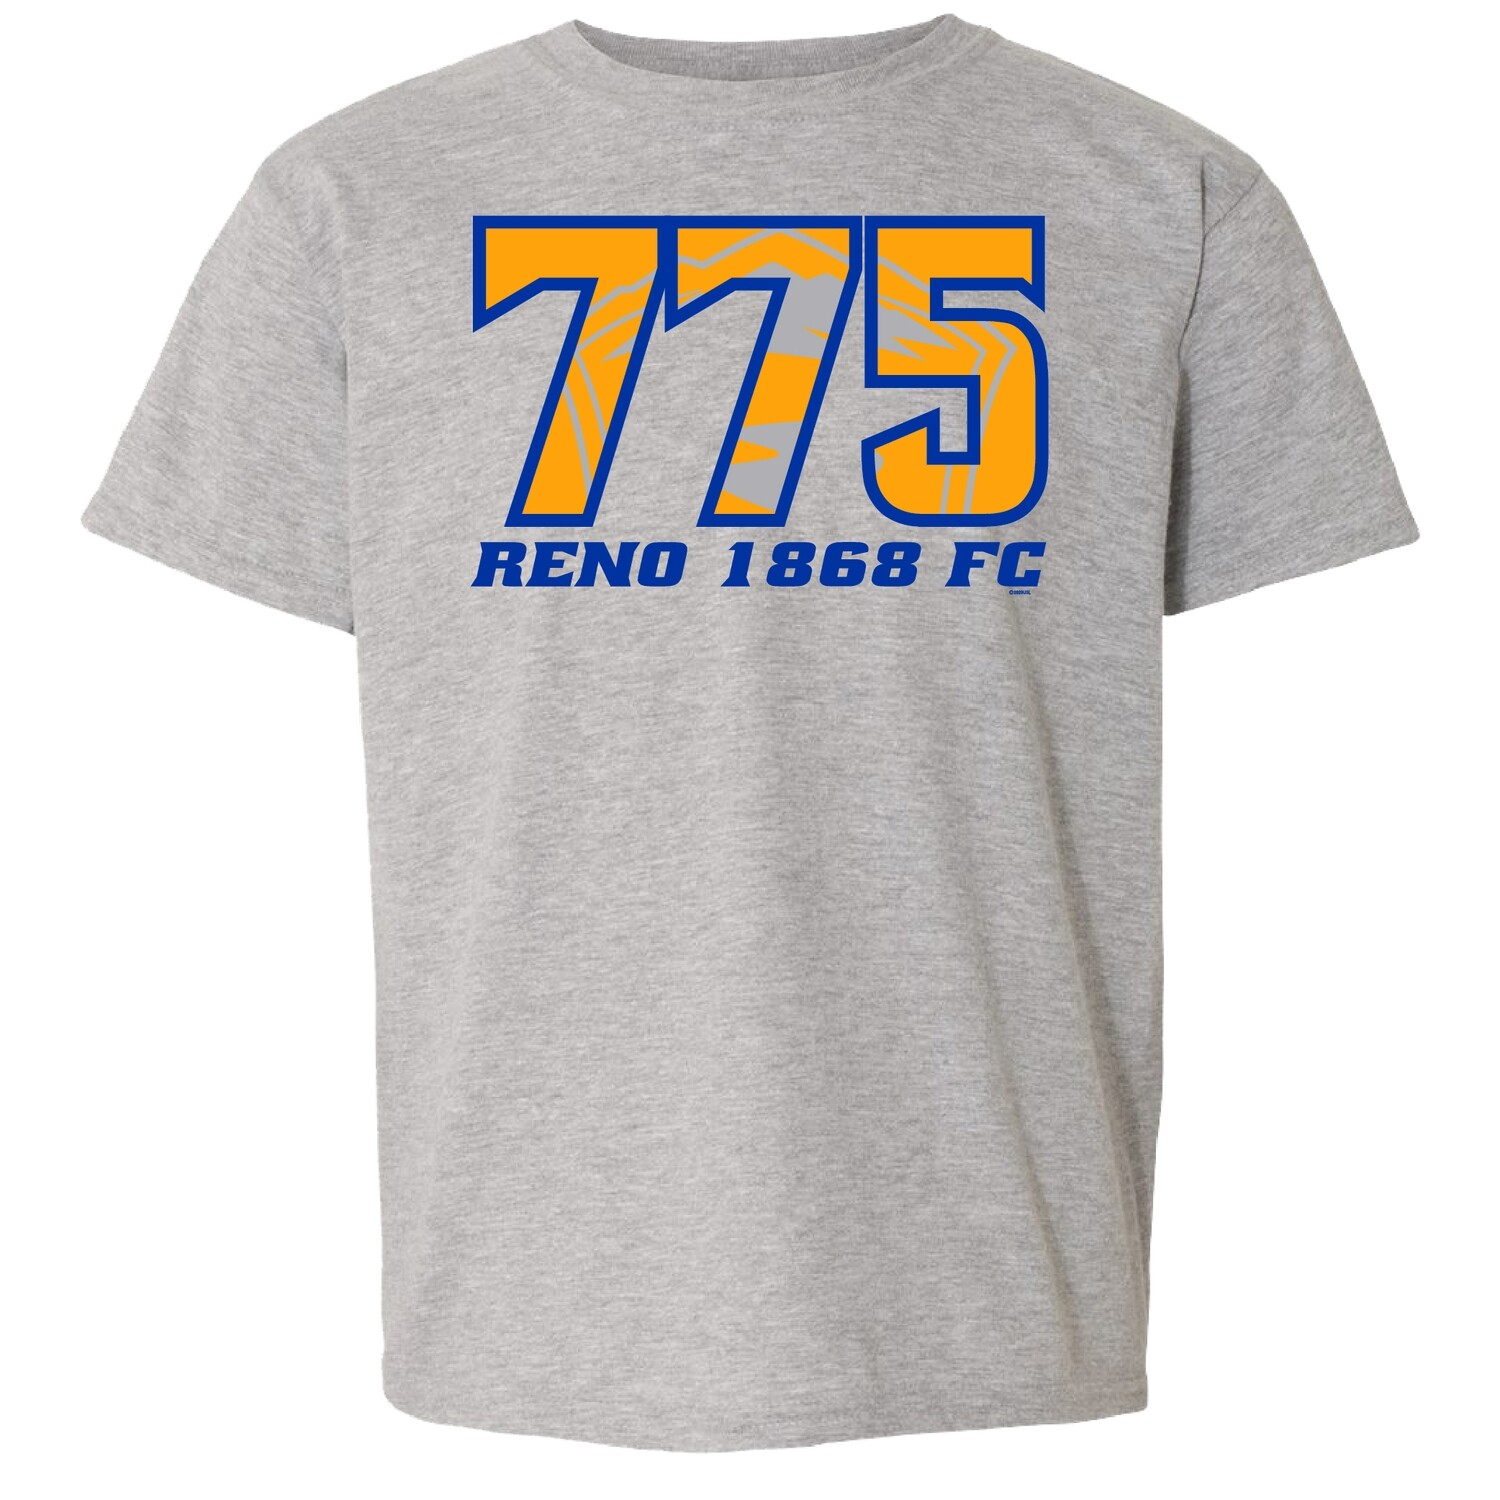 Youth Reno 1868 FC Area Code Tee